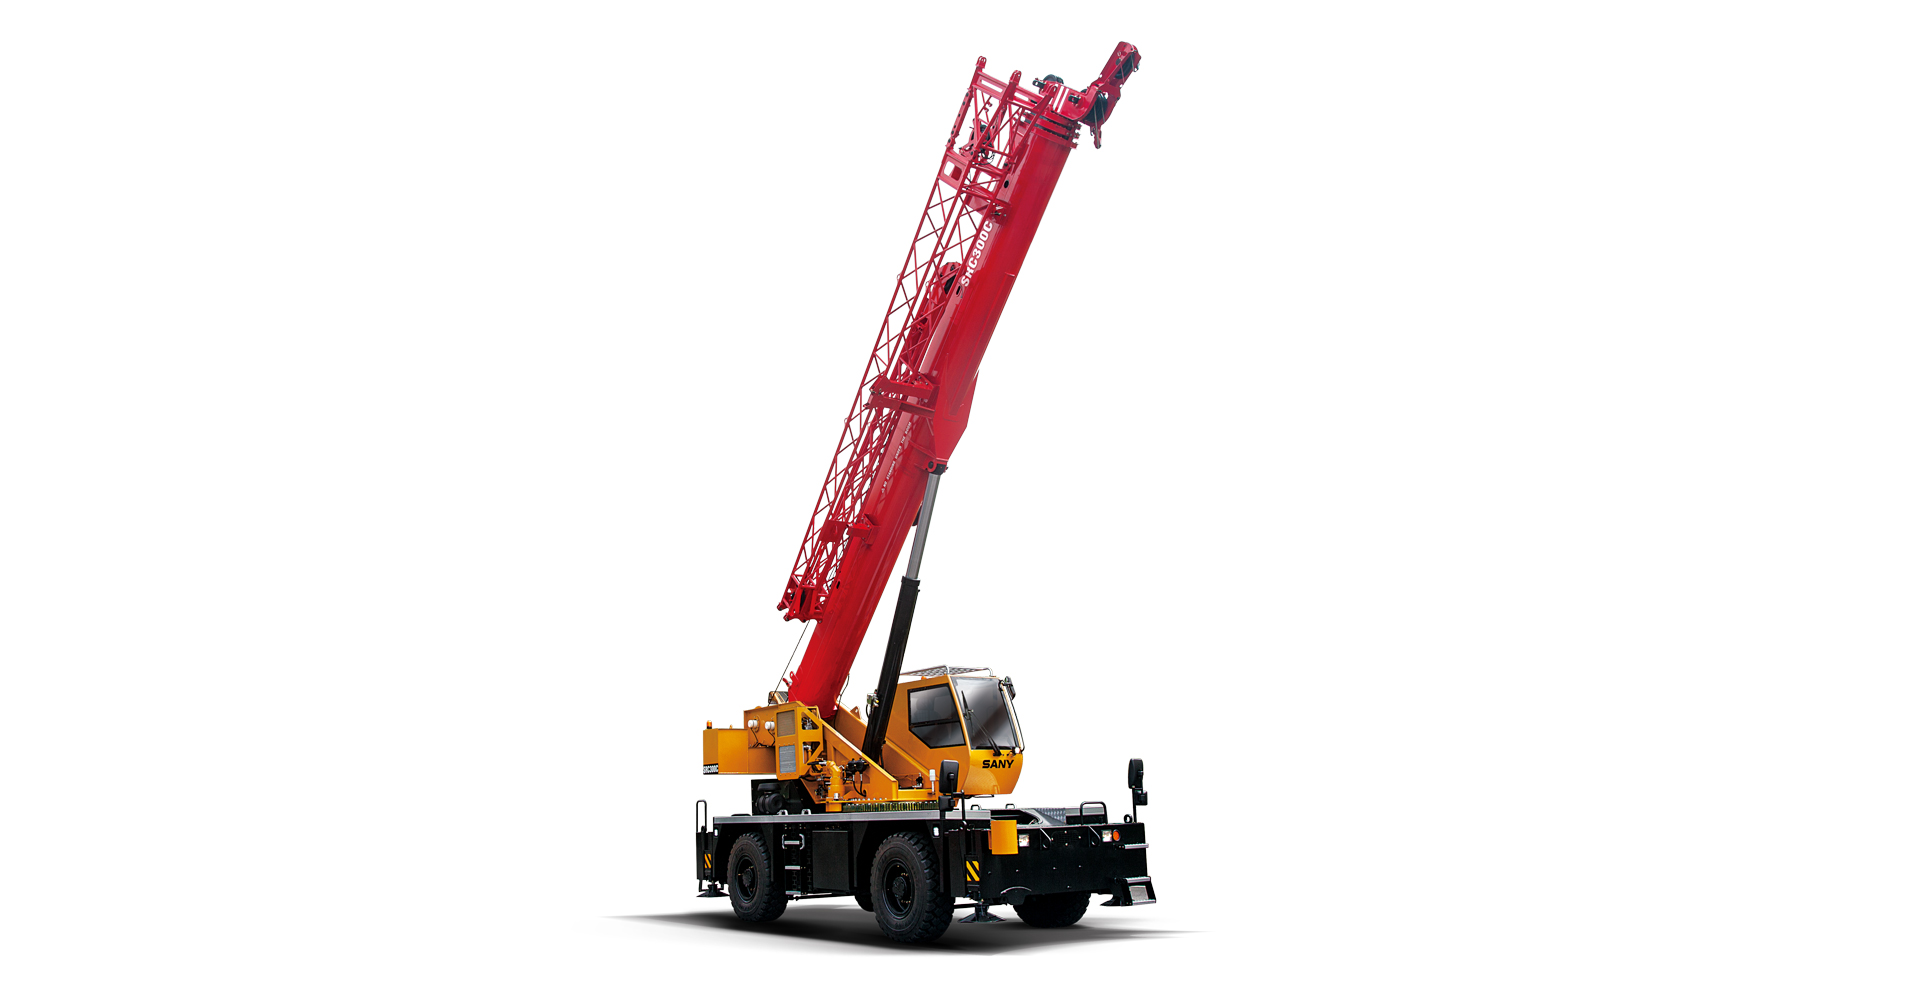 SRC300C 30 tons Rough Terrain Crane